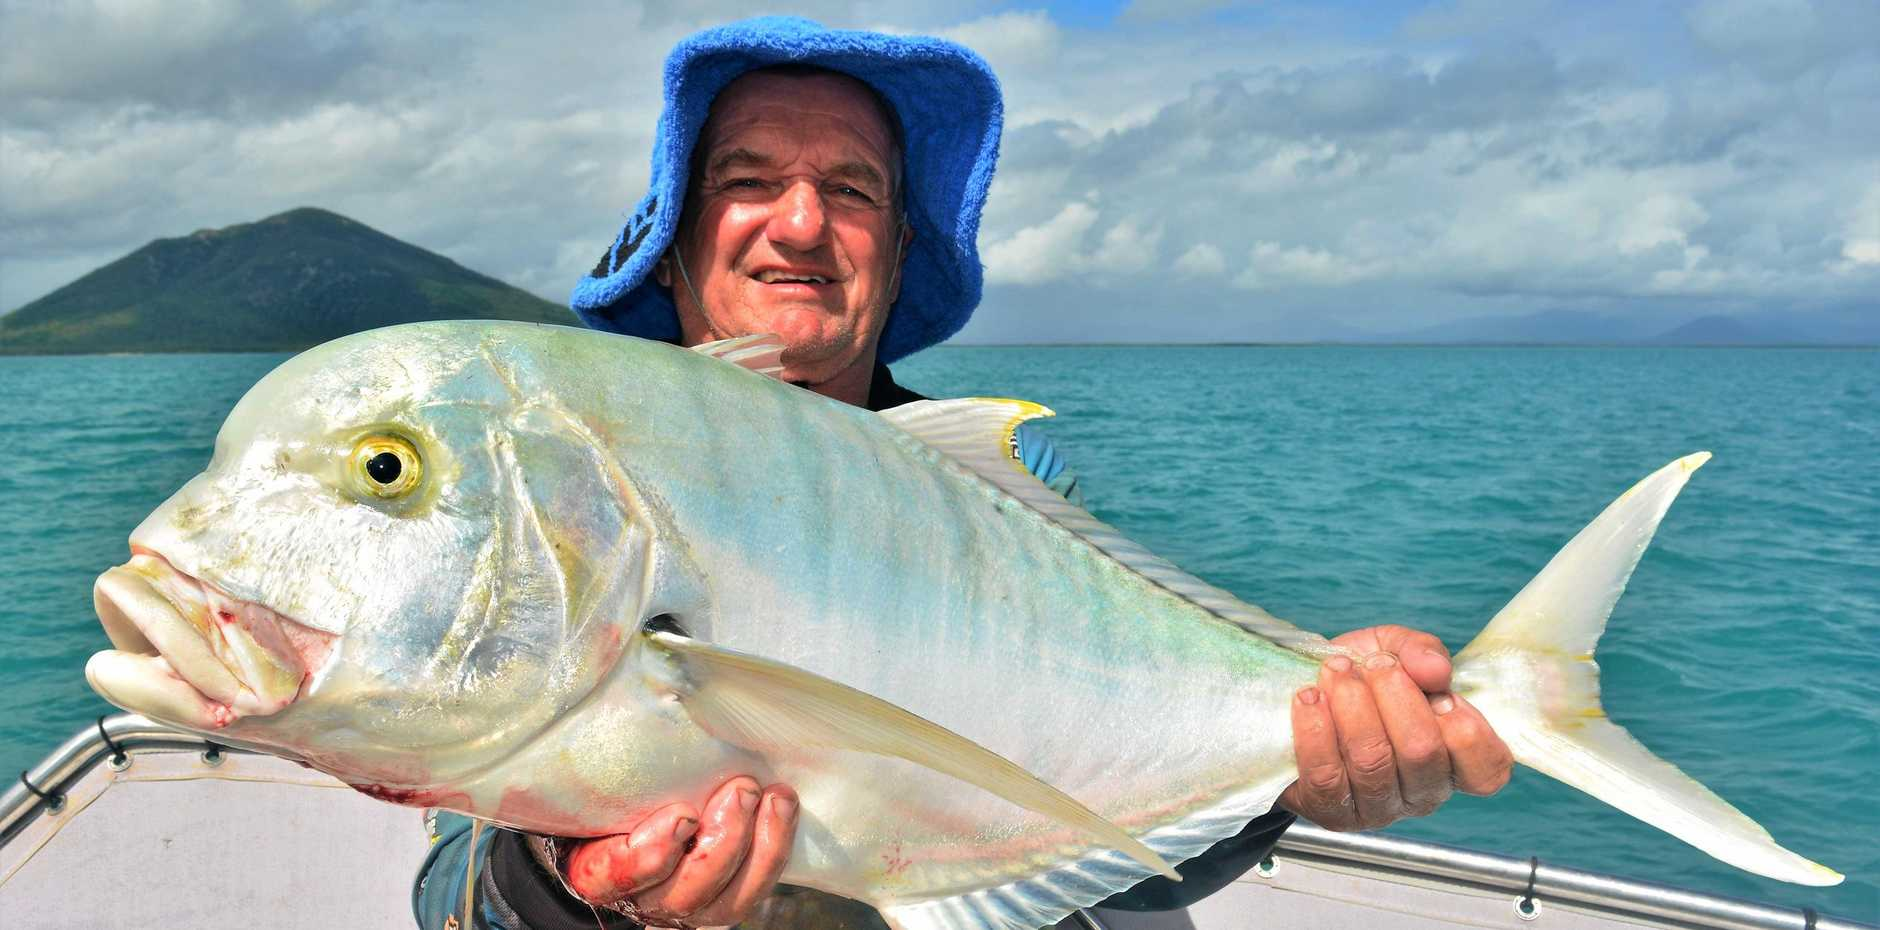 HUGE: Local legend John Martinali books a spot to get his arms stretched on Reel Addiction every week. Last week he won a good old game of tug of war with this hefty golden trevally.